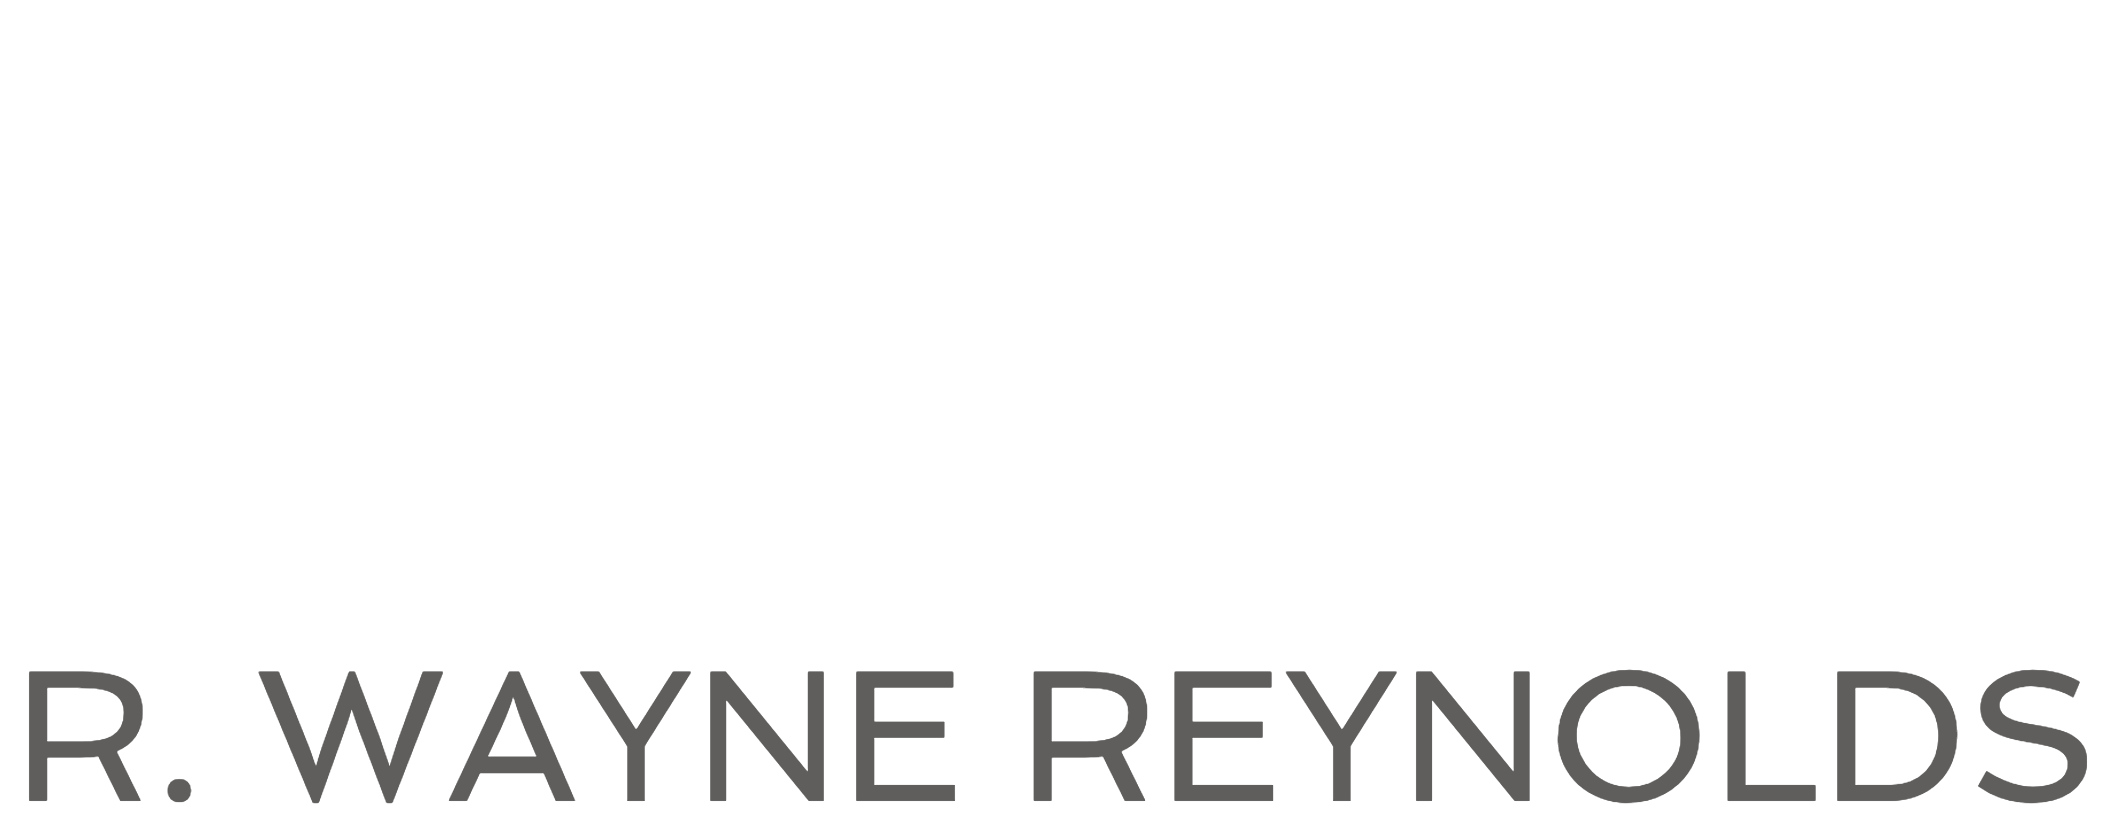 R. Wayne Reynolds - Founder R. Wayne Reynolds has been involved in the assessment and conservation treatment of significant historic objects; as well as the design and hand crafting of fine period reproduction frames, mirrors, and furniture for 37 years.